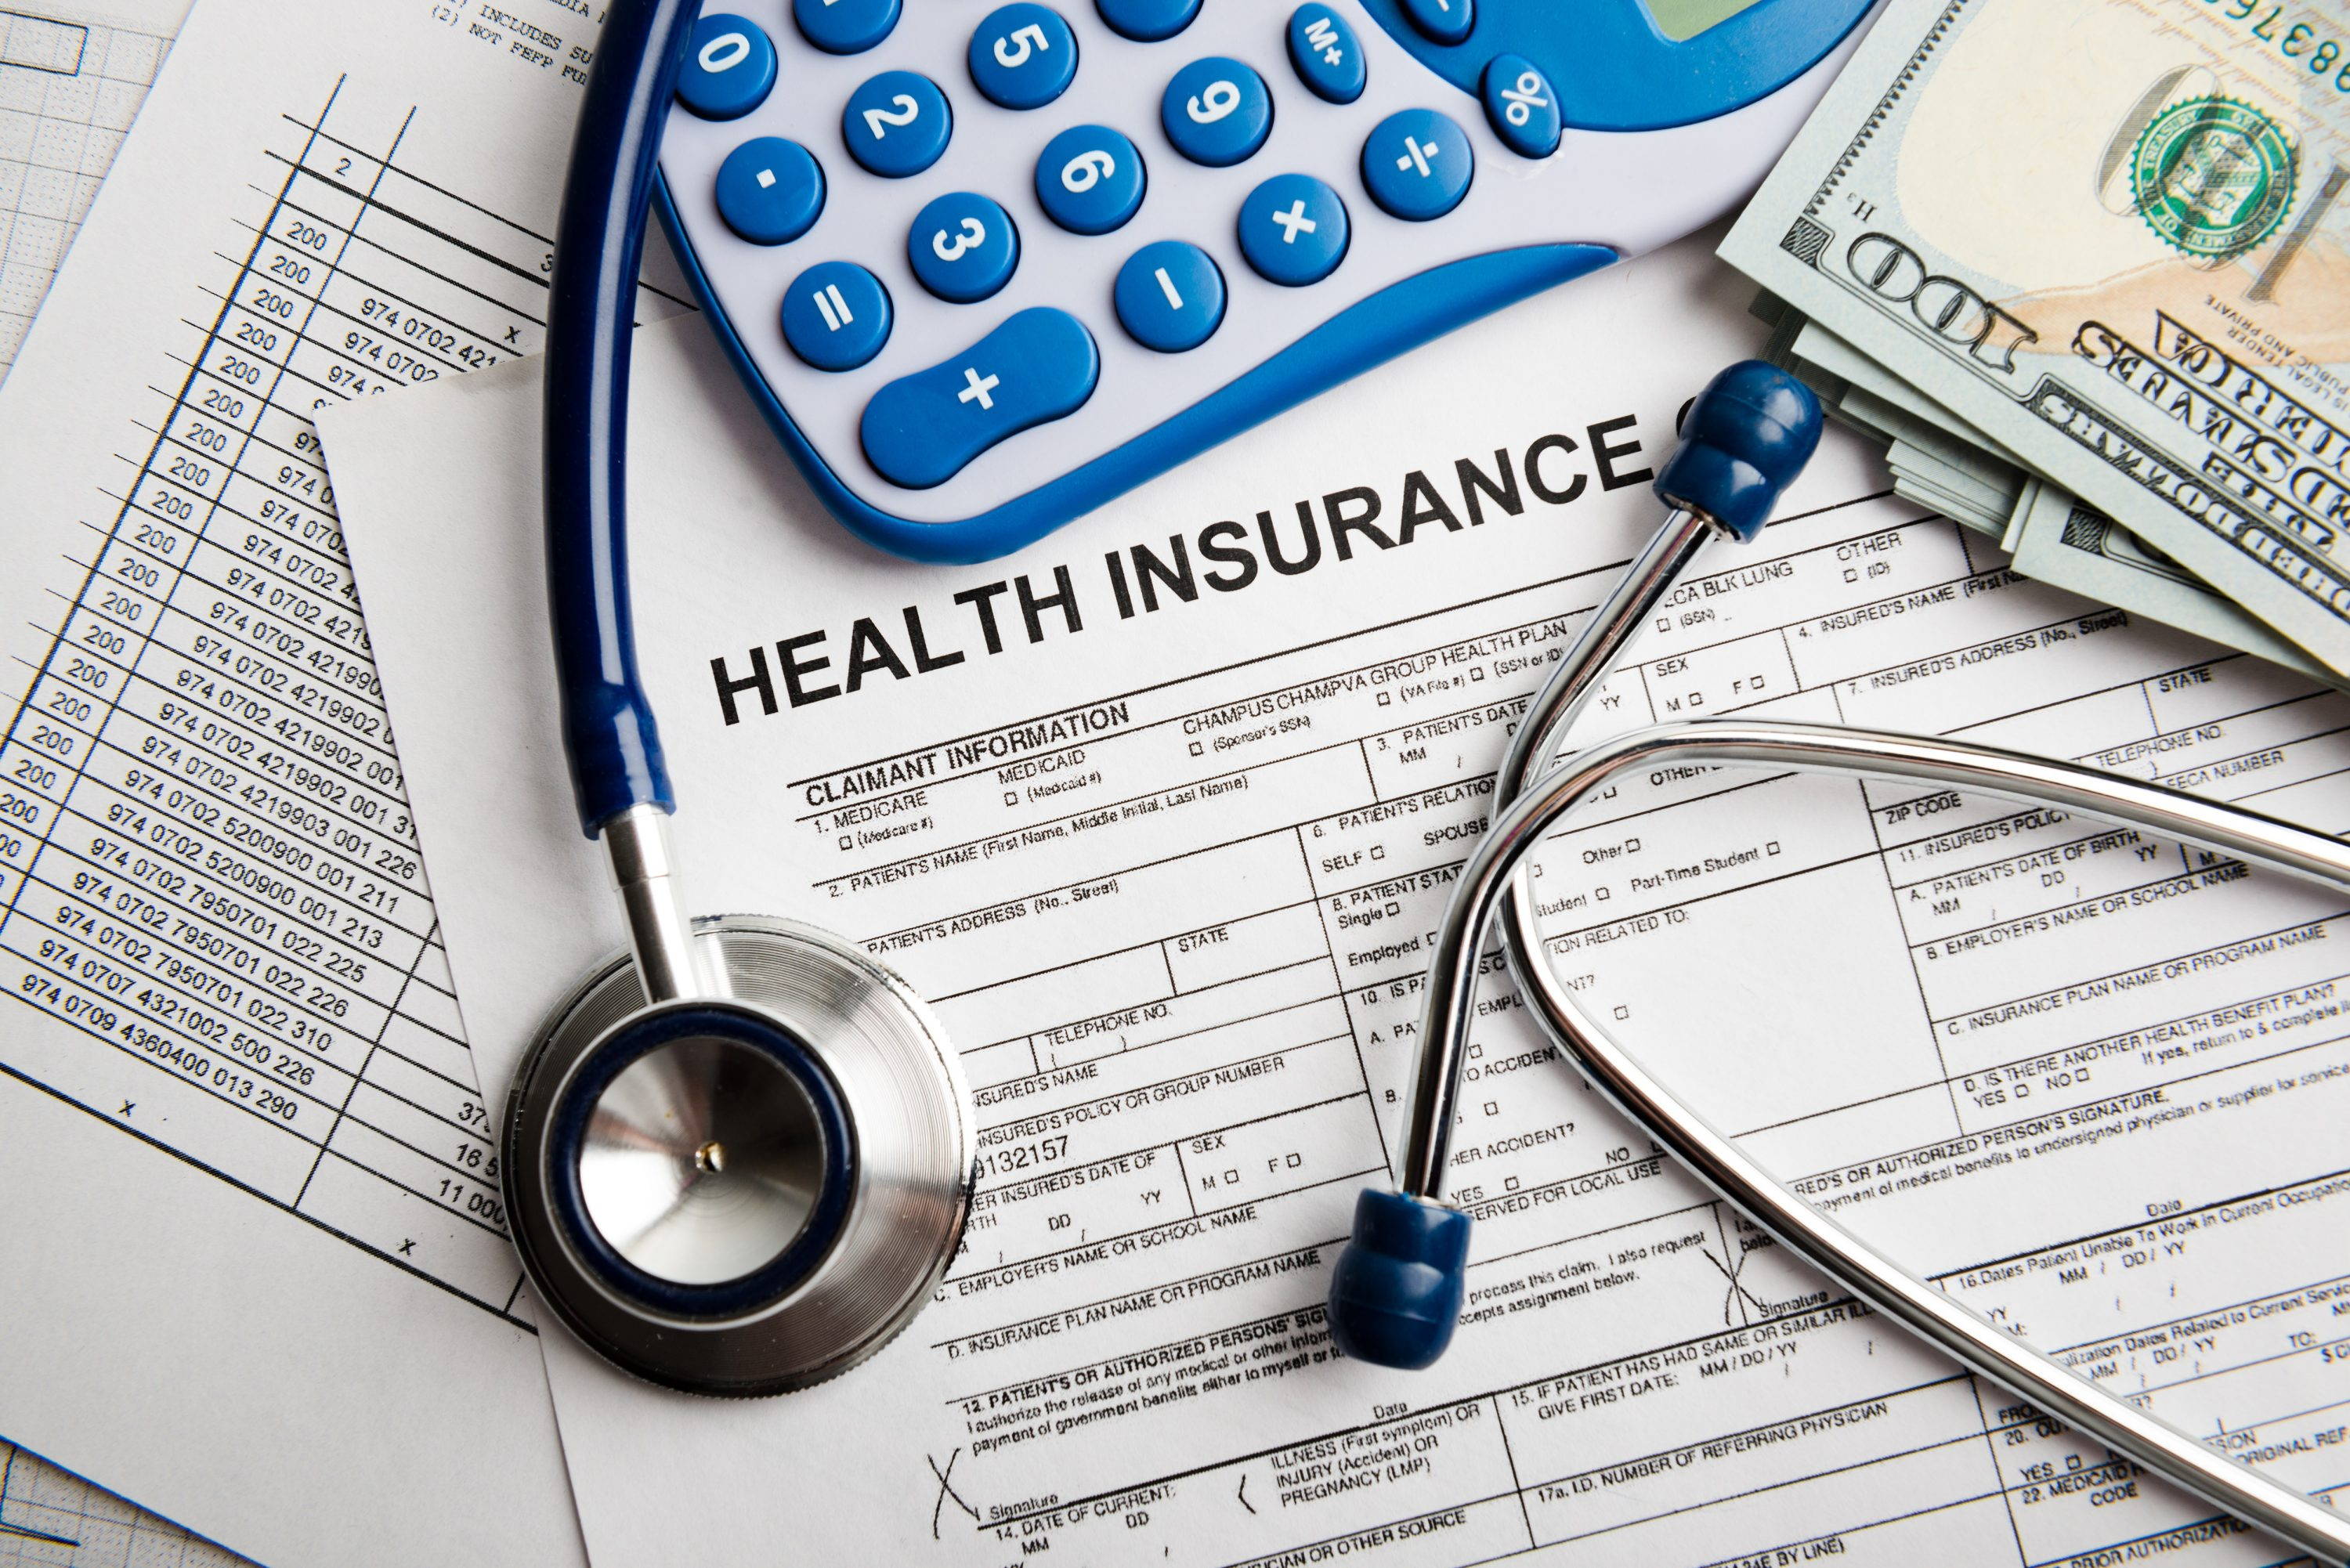 Health insurance paperwork. (Shutterstock Photo)